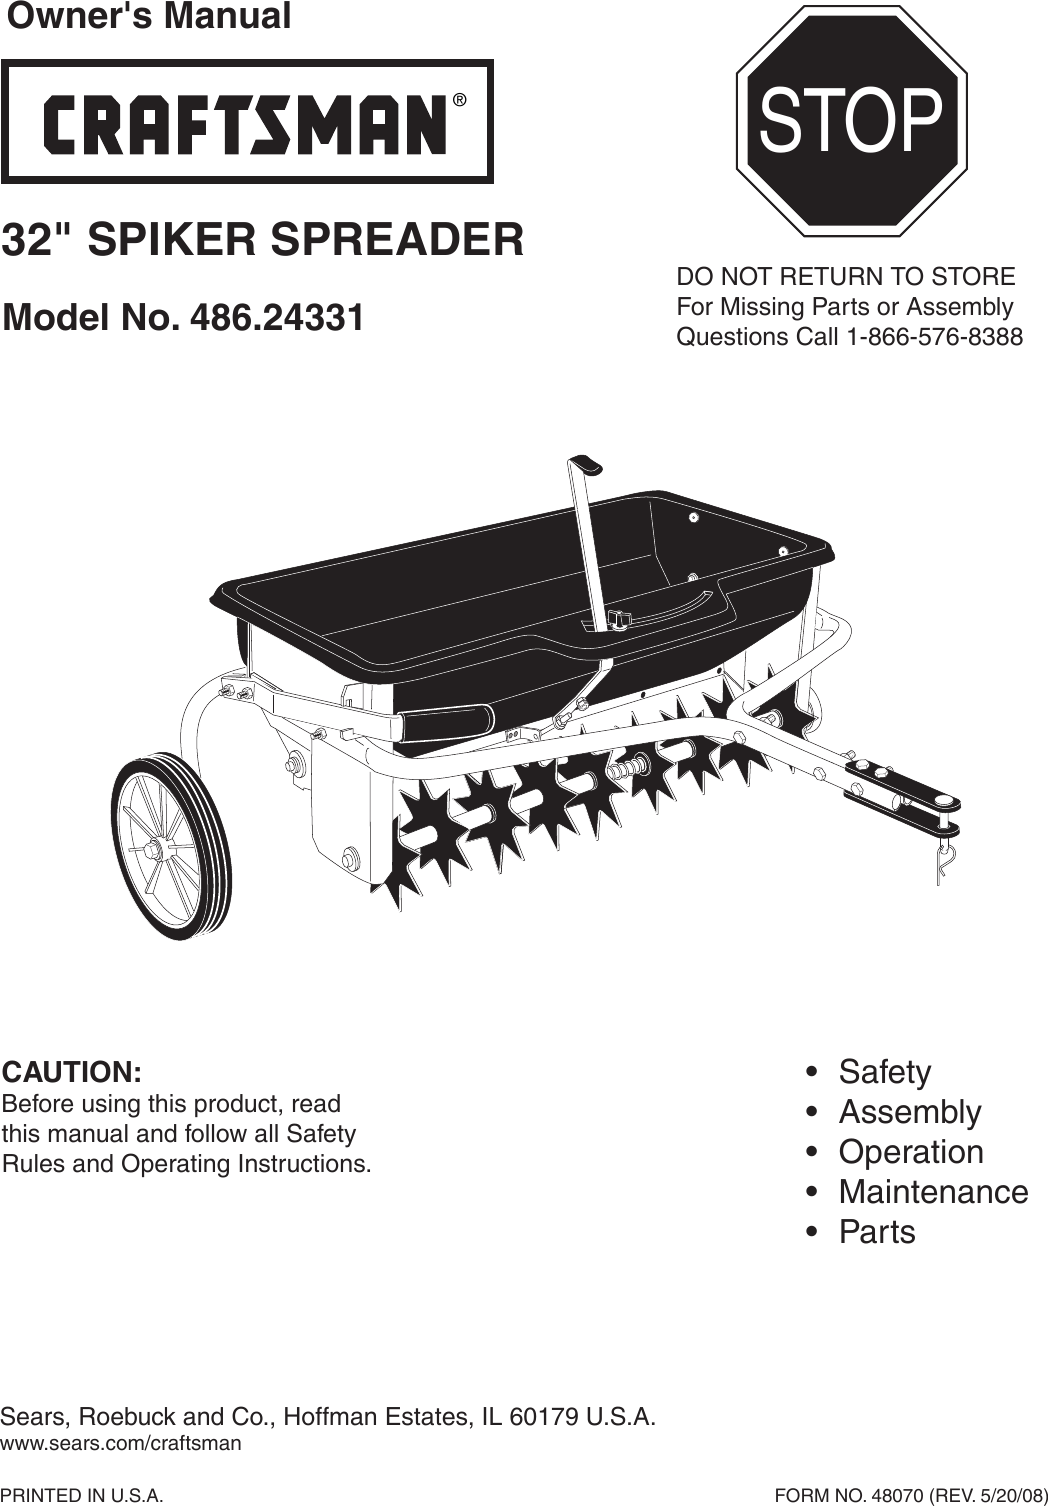 craftsman 32 in spread width aerator spreader combo 100 lb capacity owners manual